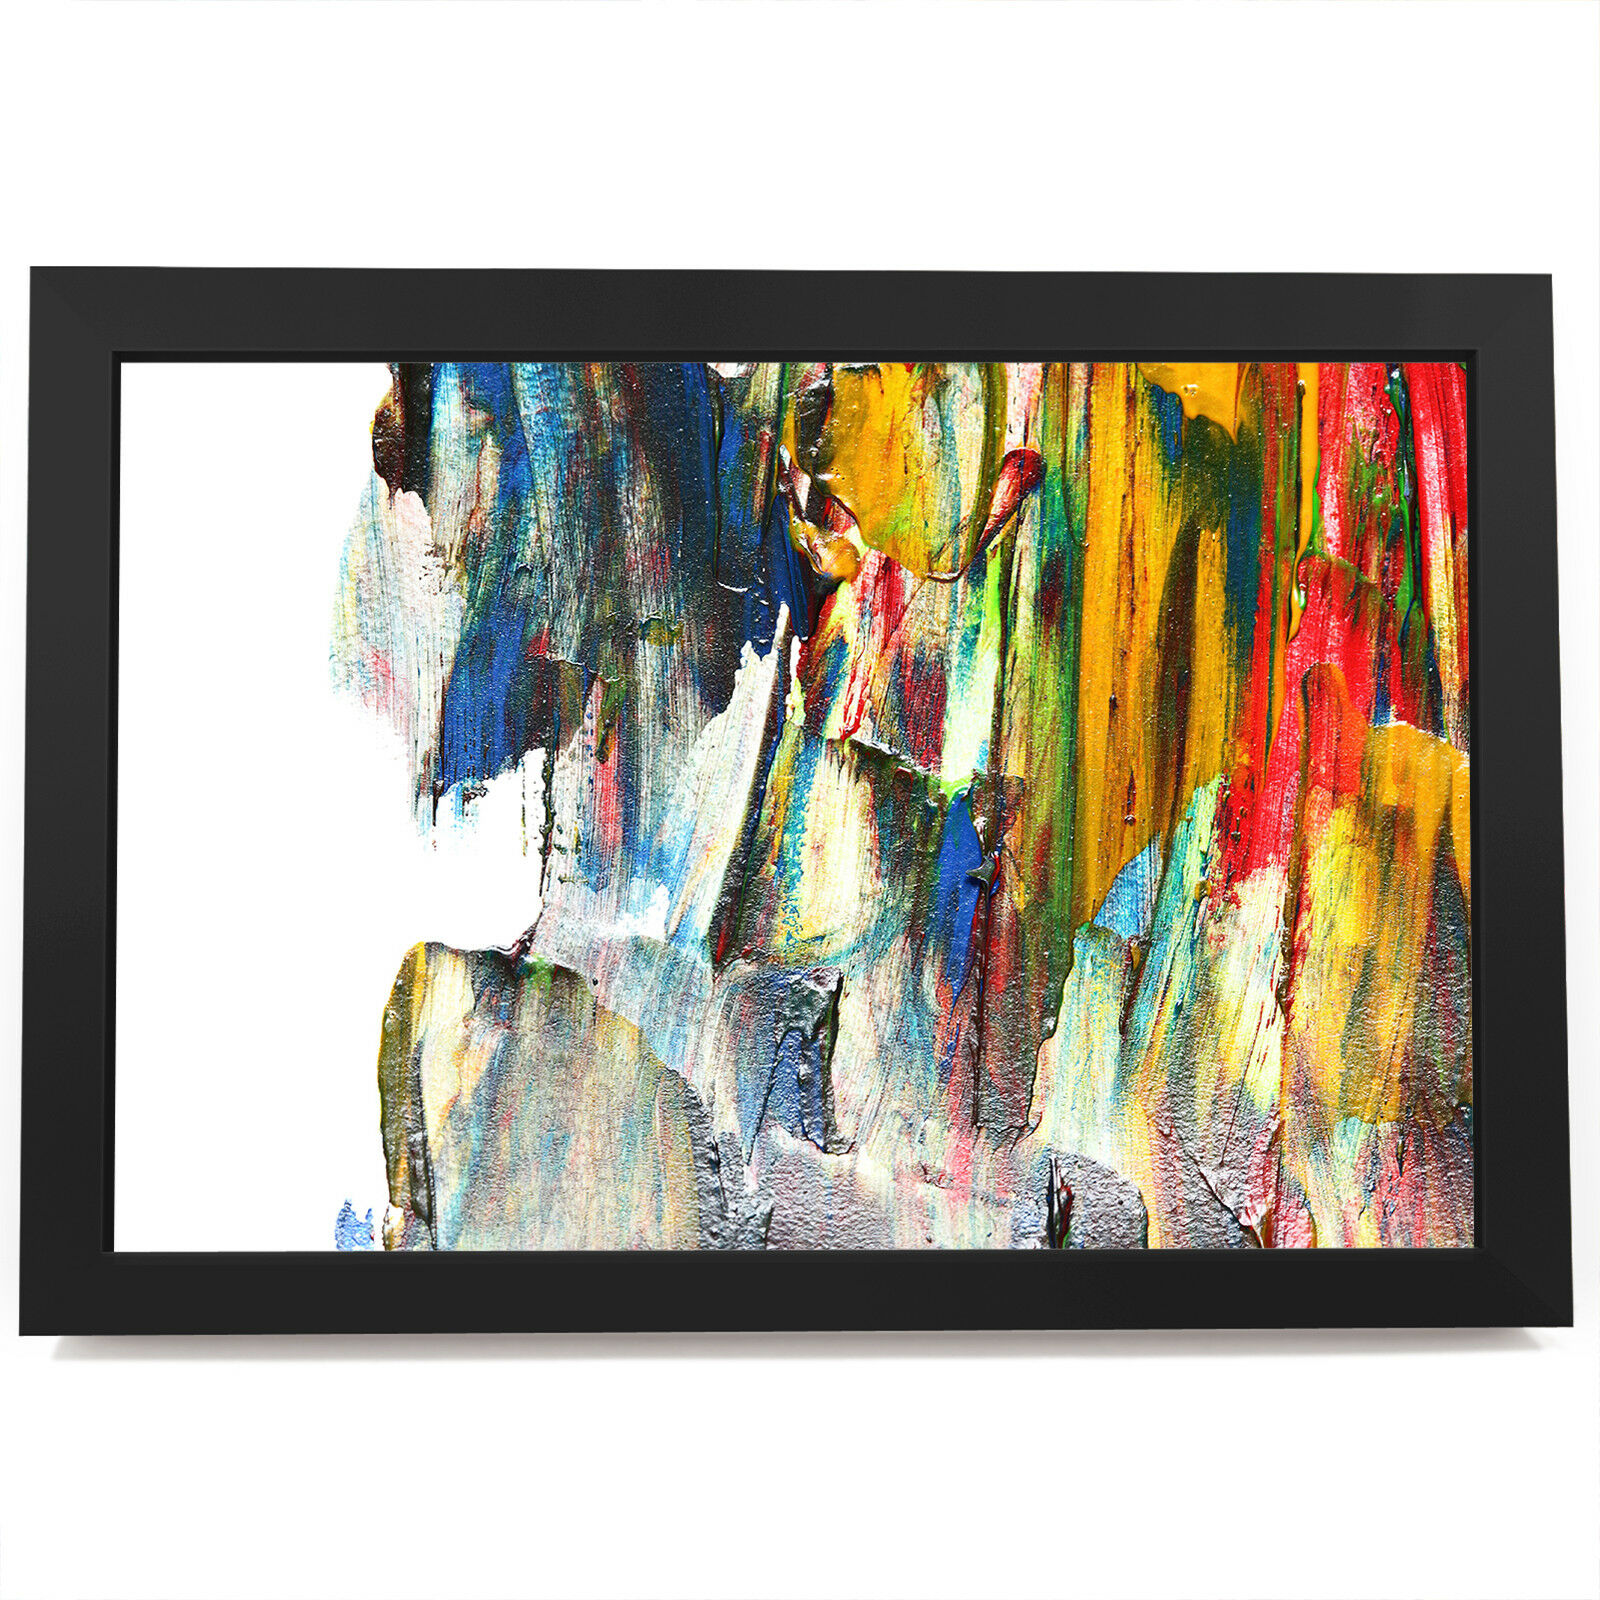 AB1765 Retro Colourful Cool Modern Abstract Framed Wall Art Large Picture Prints